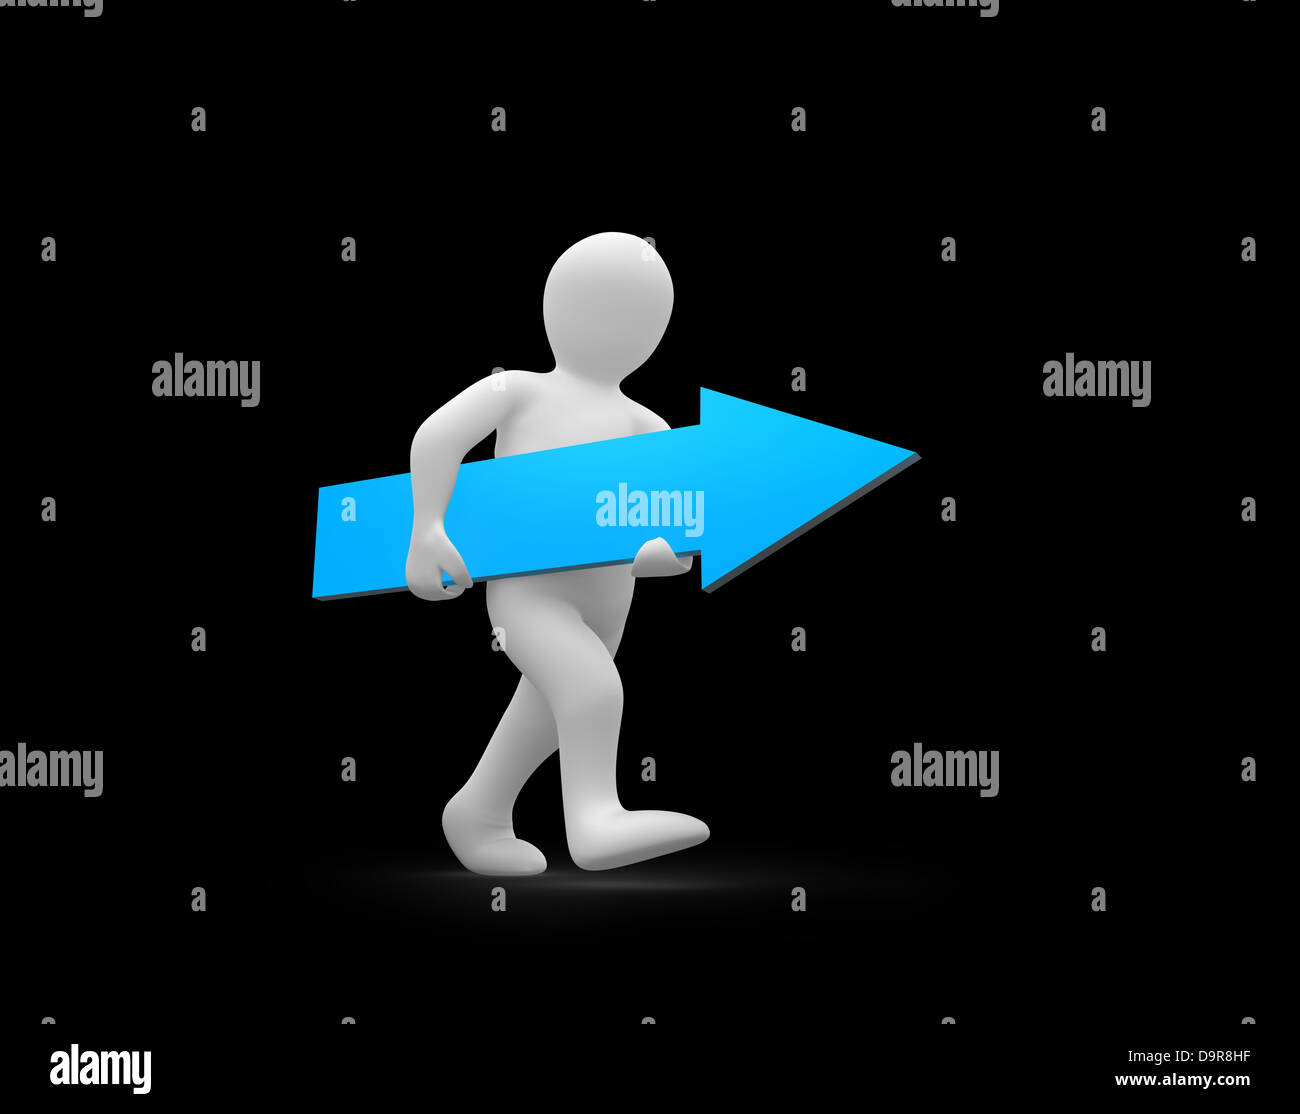 Human representation walking while holding blue arrow sign - Stock Image